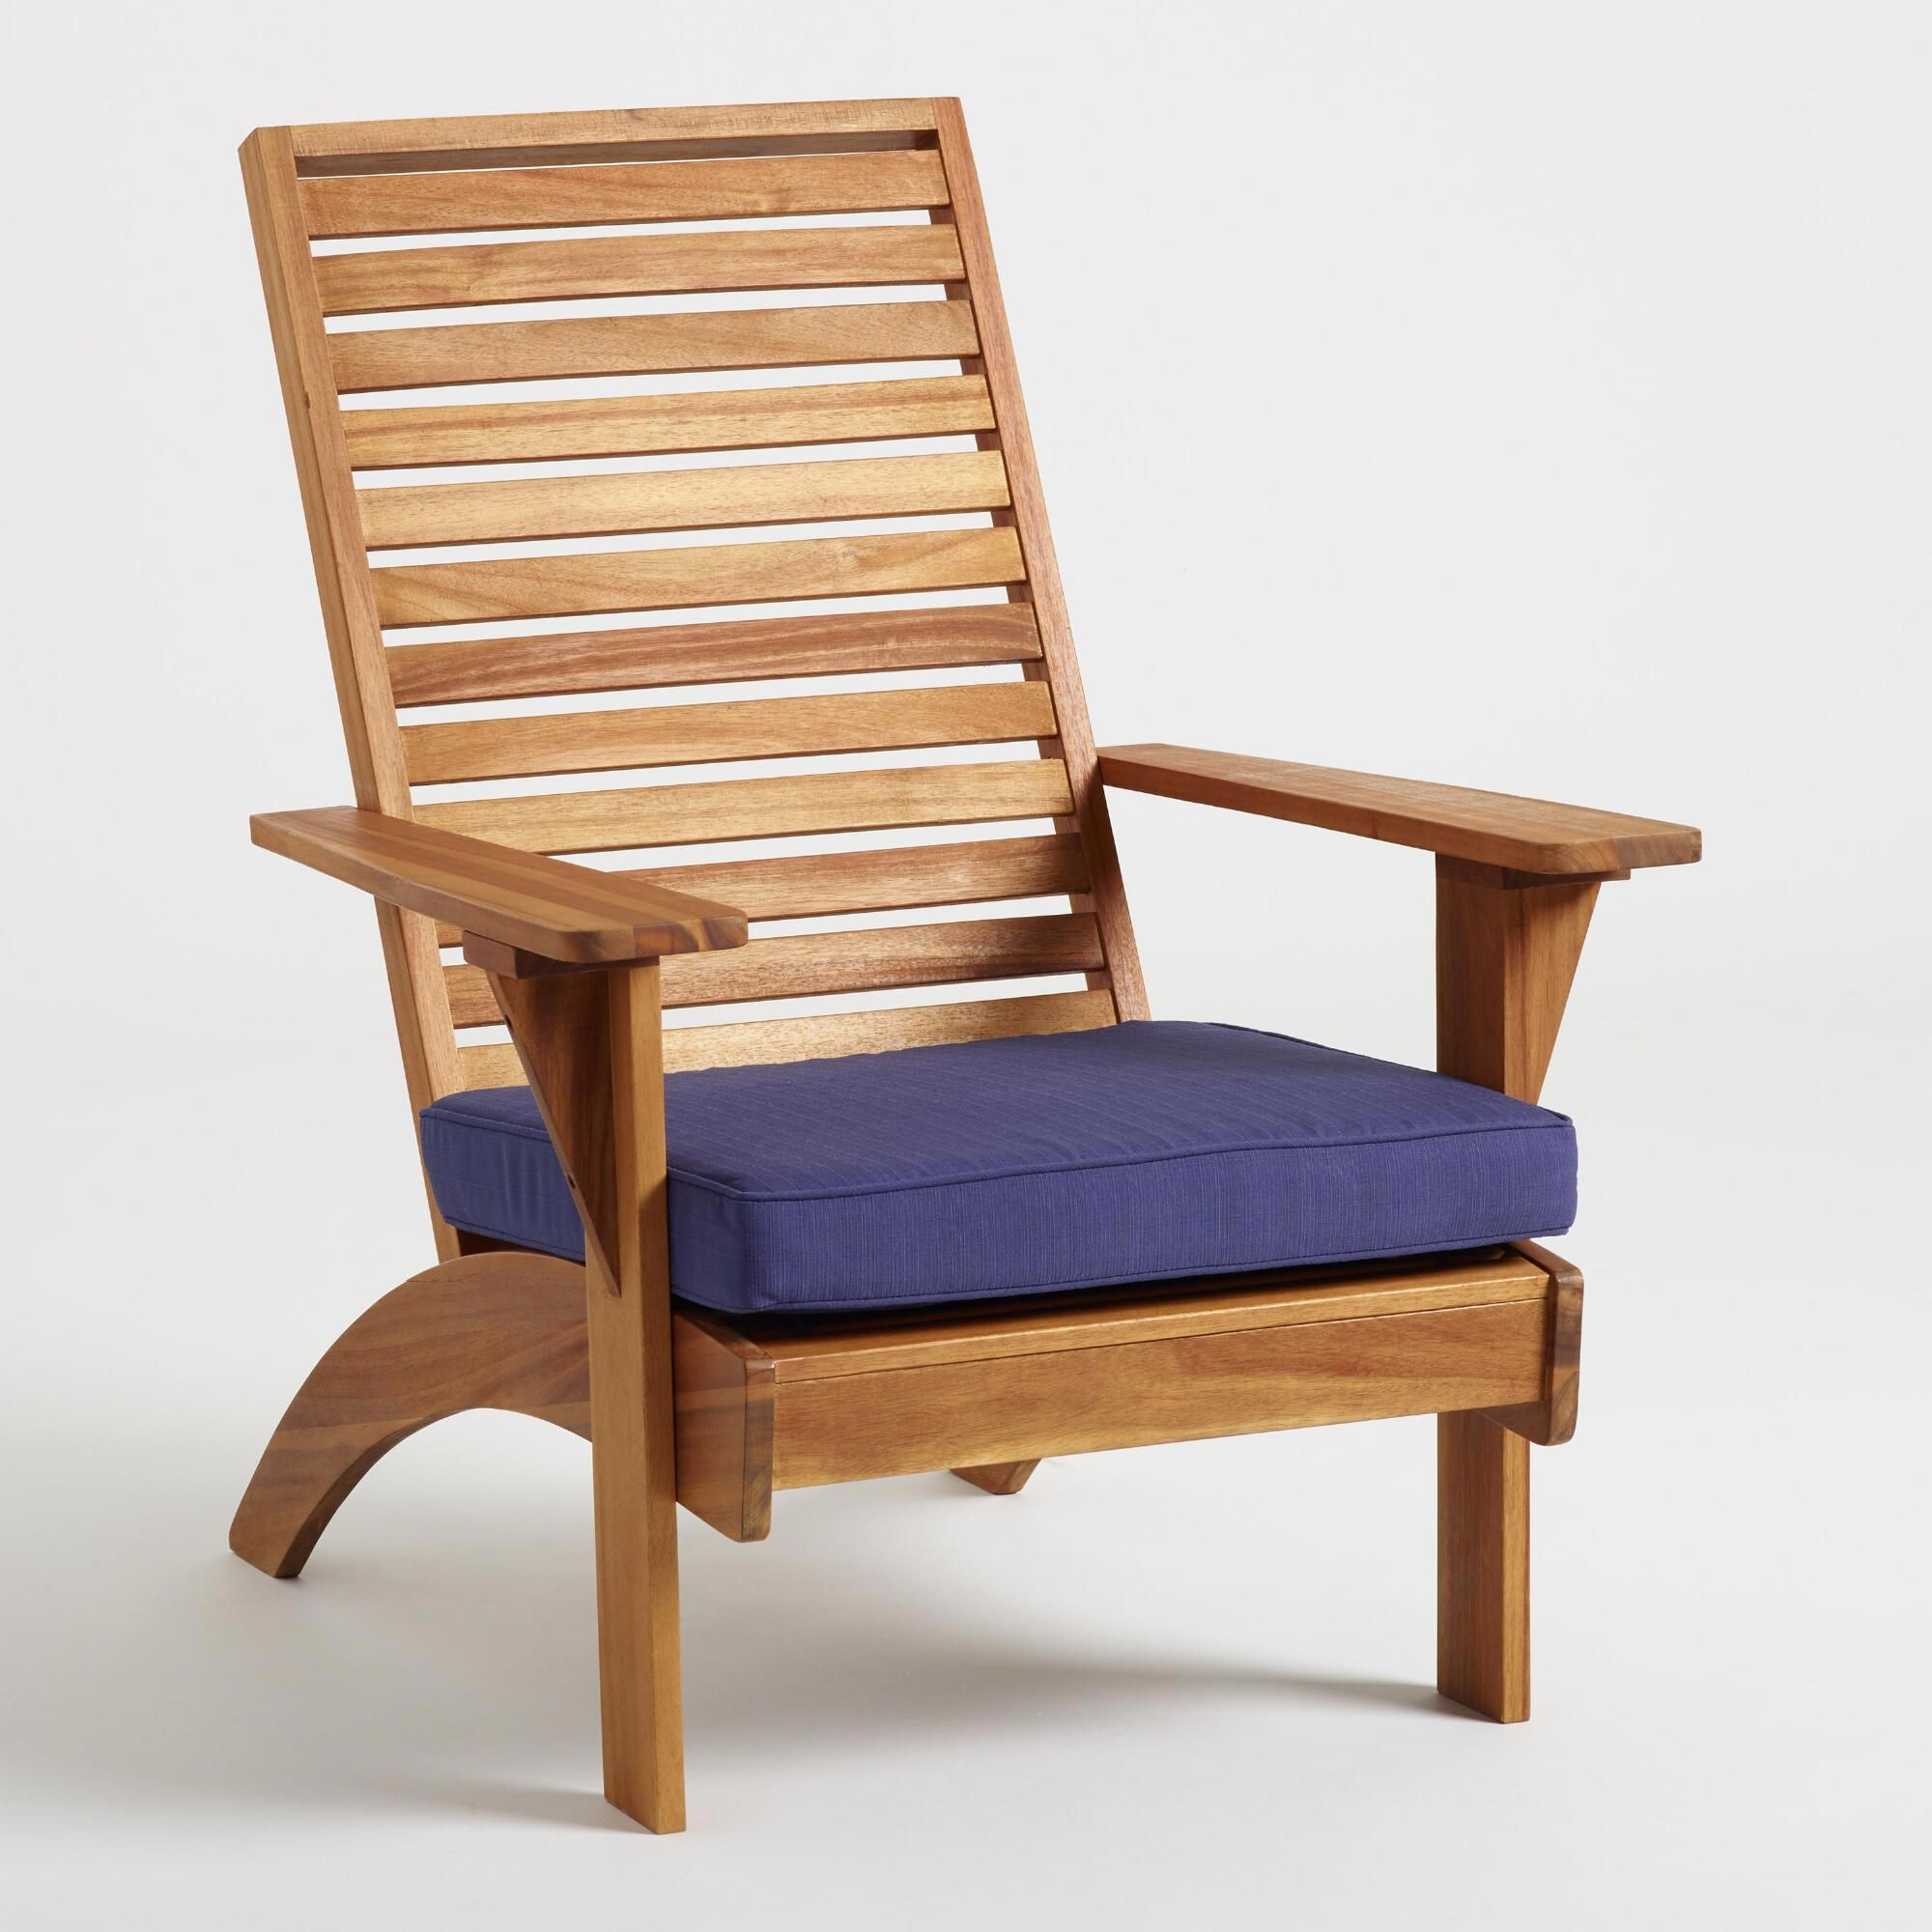 Natural Wood Hyacinth Adirondack Chair with Cushion by